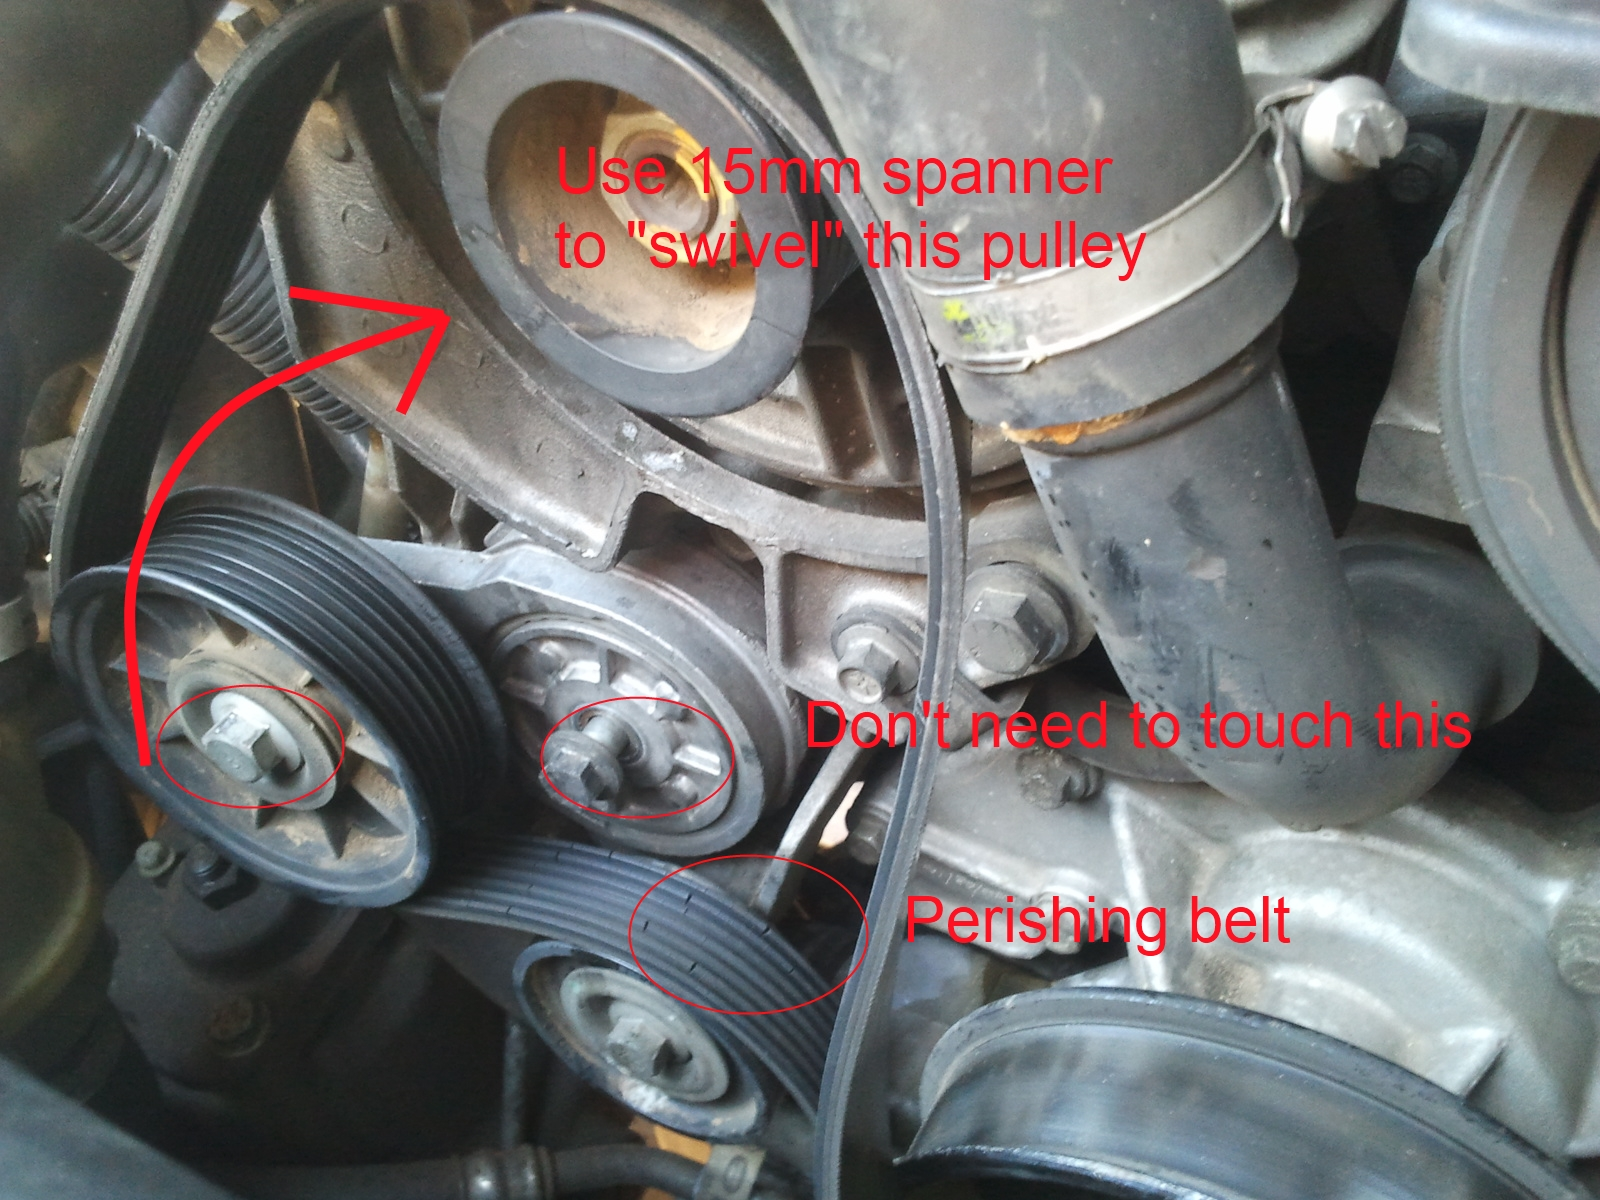 discovery 2 ace wiring diagram mechanical wave the serpentine belt v8 a budding enthusiasts story now remove old by rotating tensioner pulley